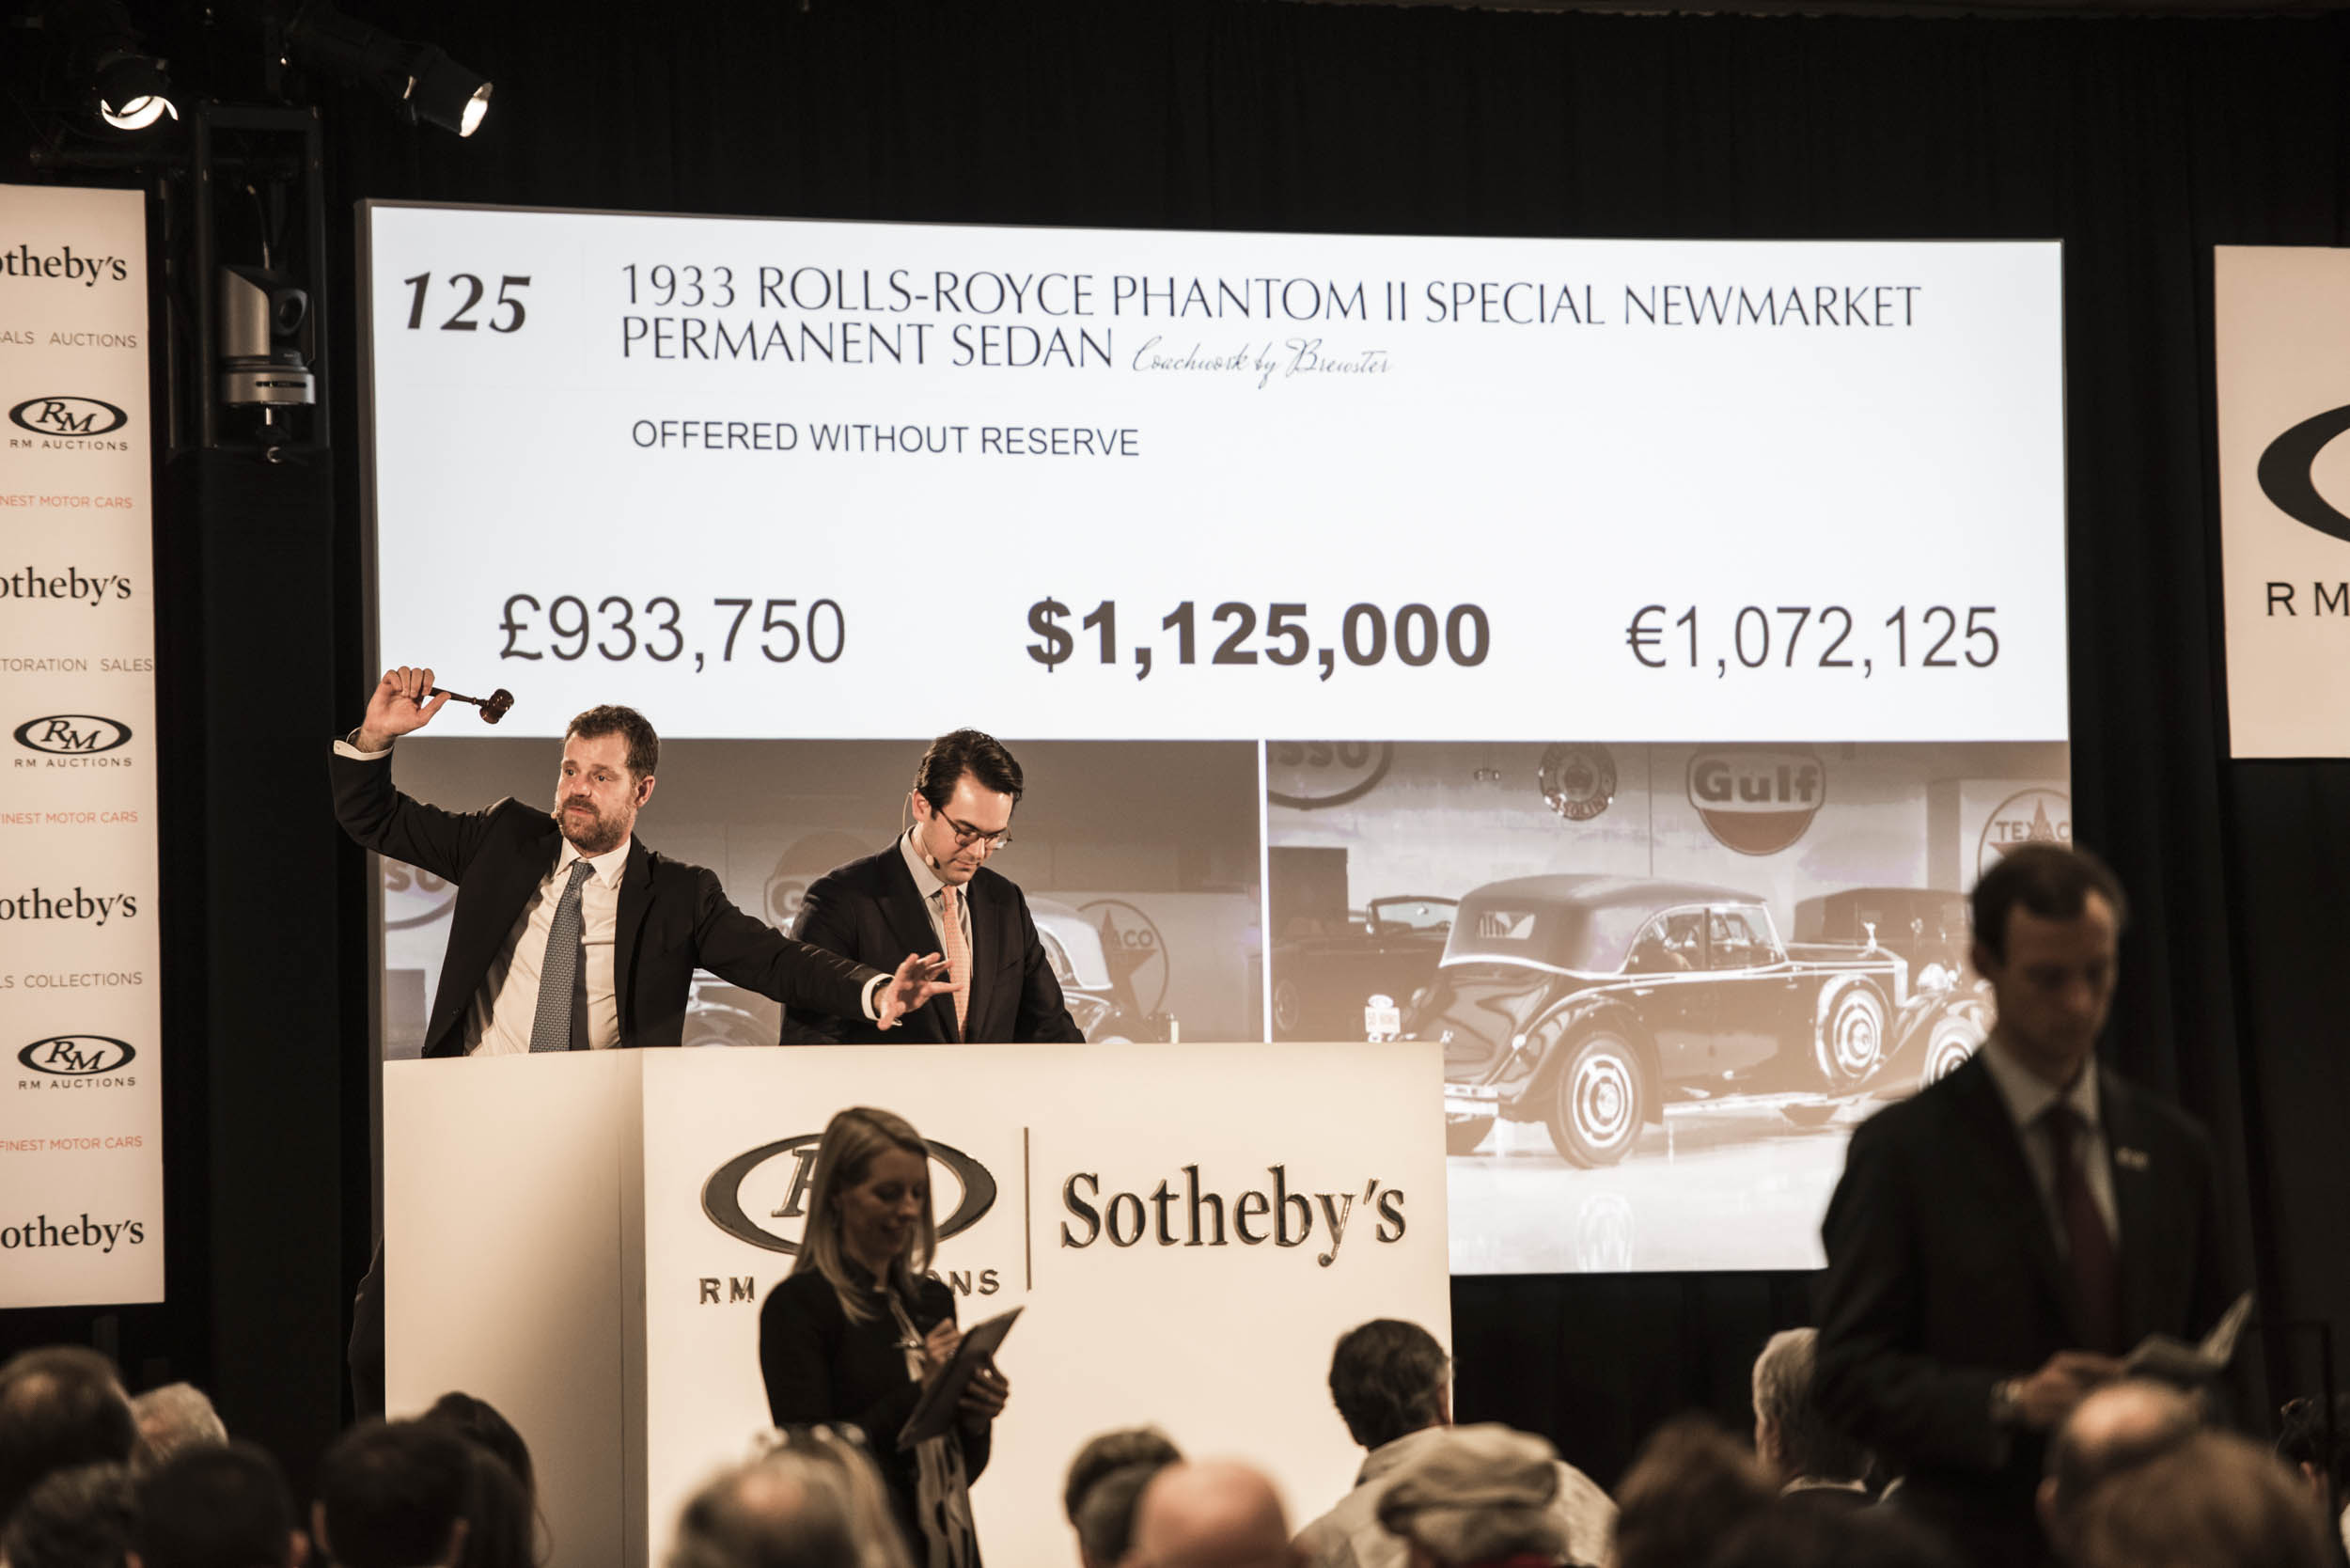 RM Sotheby's Monterey classic cars